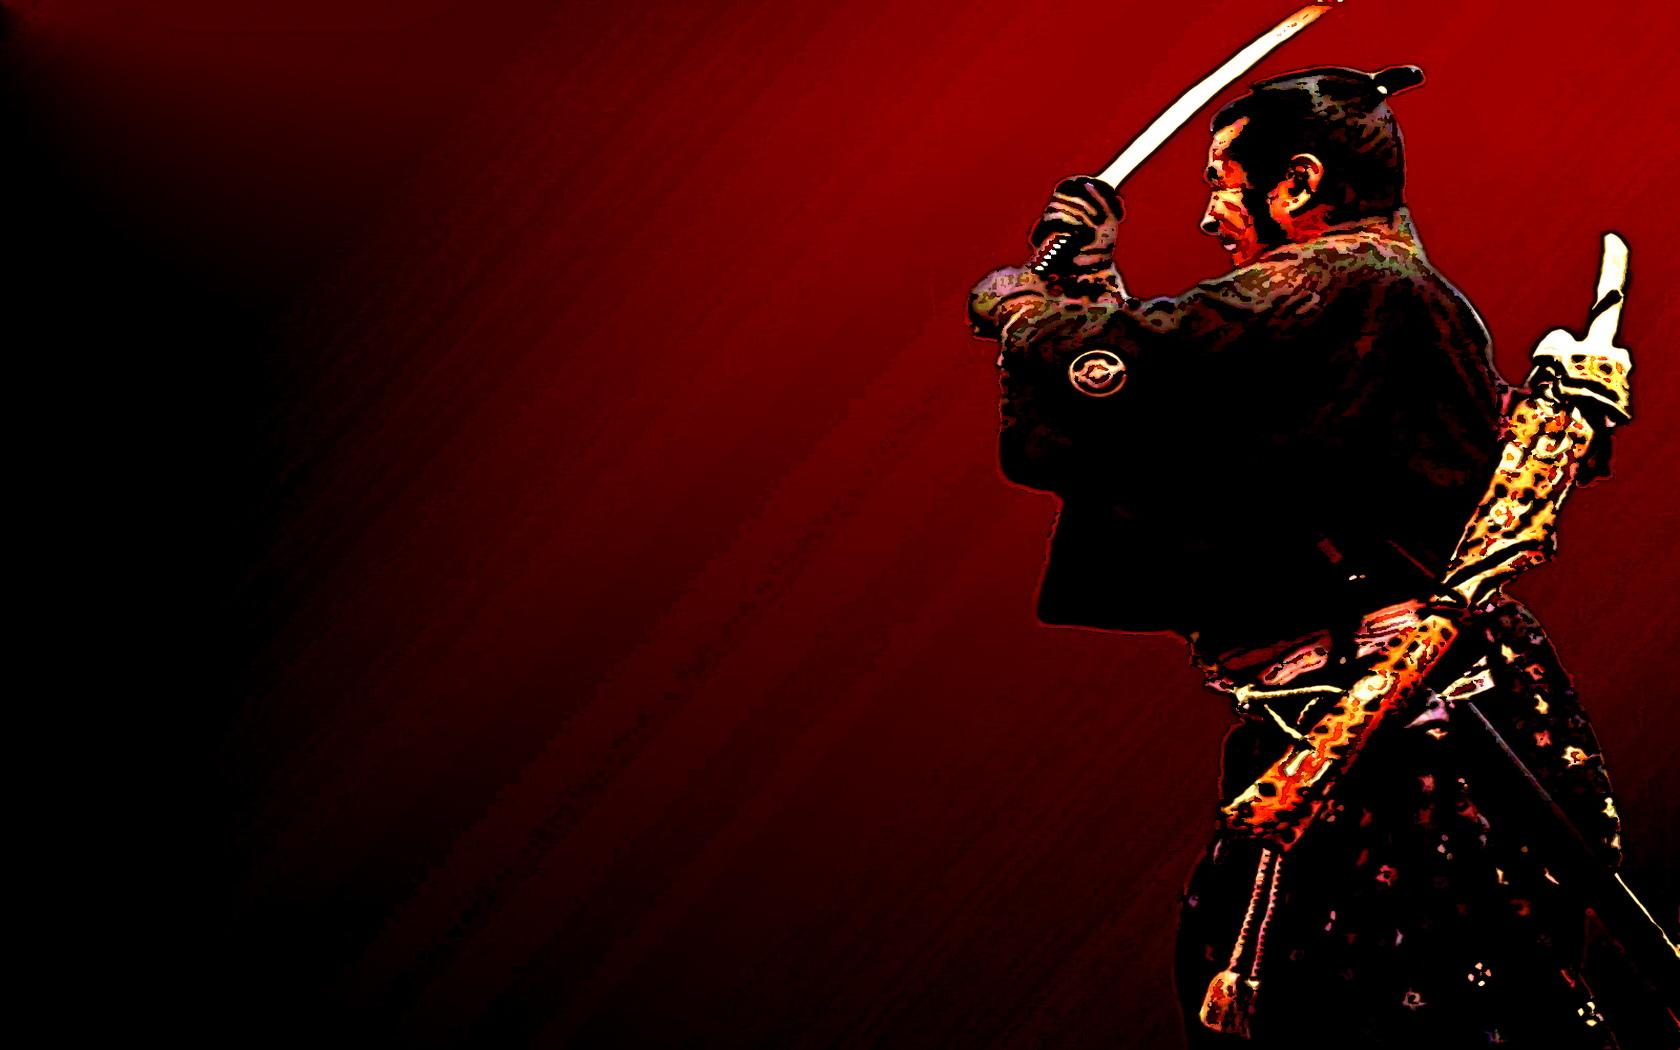 Samurai Artistic wallpapers HD quality